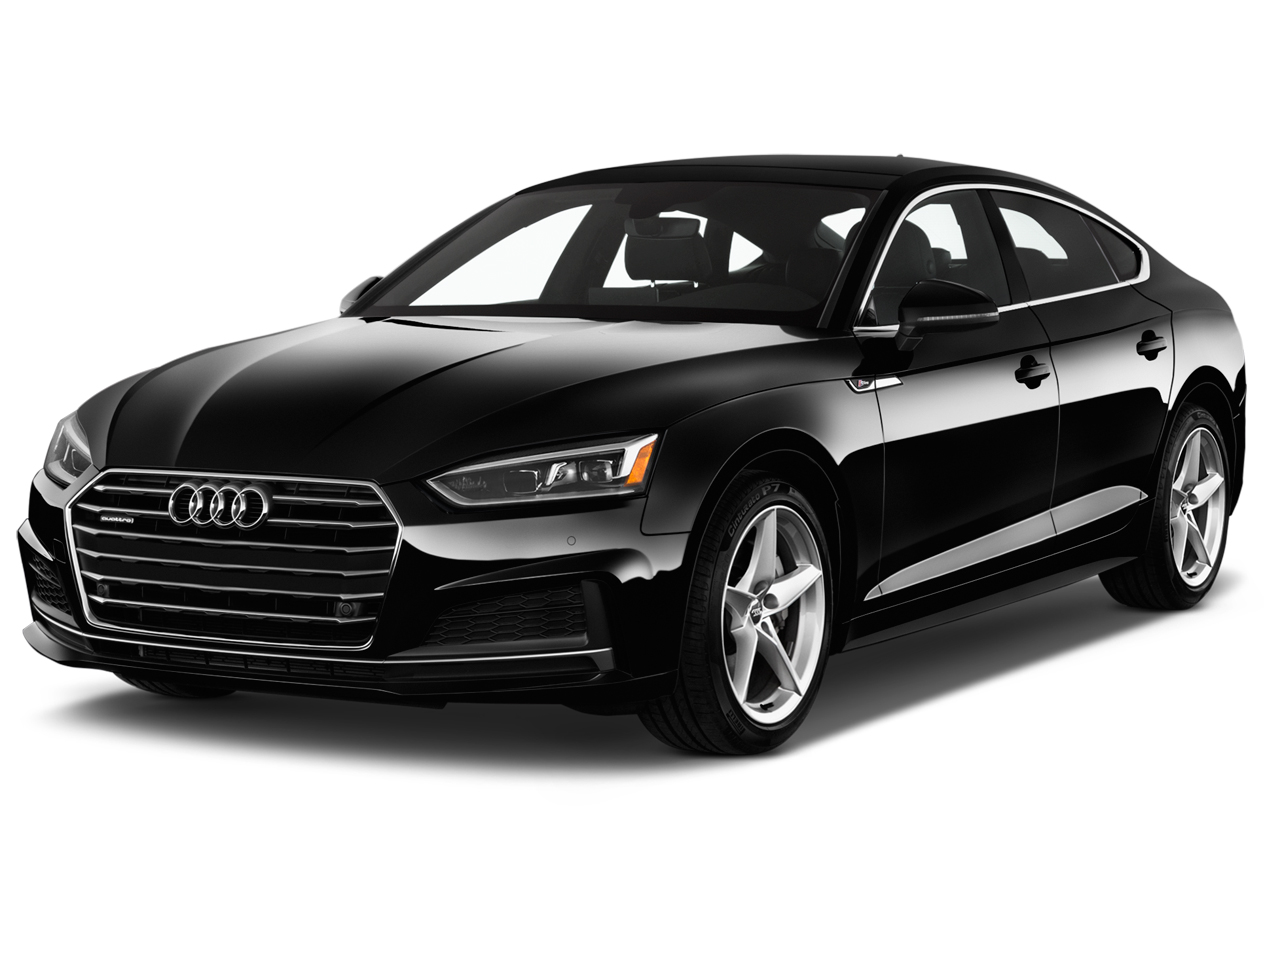 2019 Audi A5 Sportback Review, Ratings, Specs, Prices, and ...